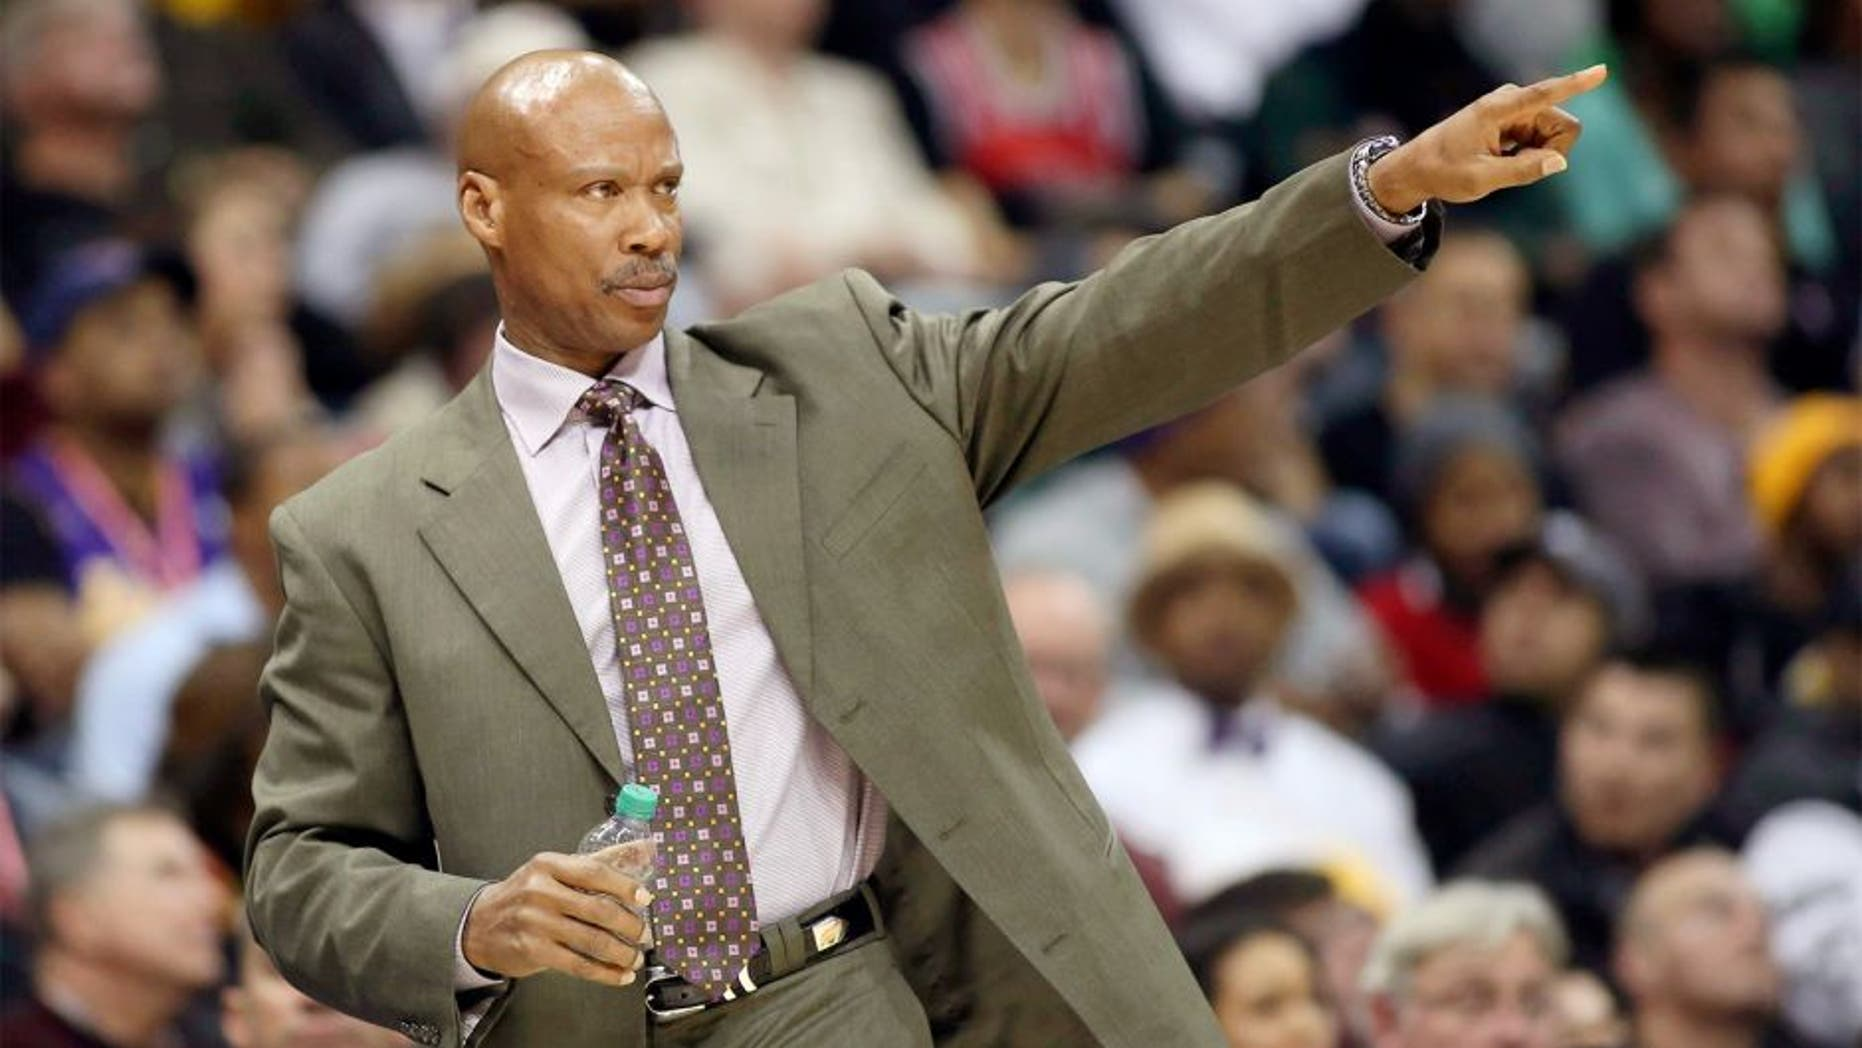 Nov 18, 2014; Atlanta, GA, USA; Los Angeles Lakers head coach Byron Scott is shown on the sideline in the fourth quarter of their game against the Atlanta Hawks at Philips Arena. The Lakers won 114-109. Mandatory Credit: Jason Getz-USA TODAY Sports